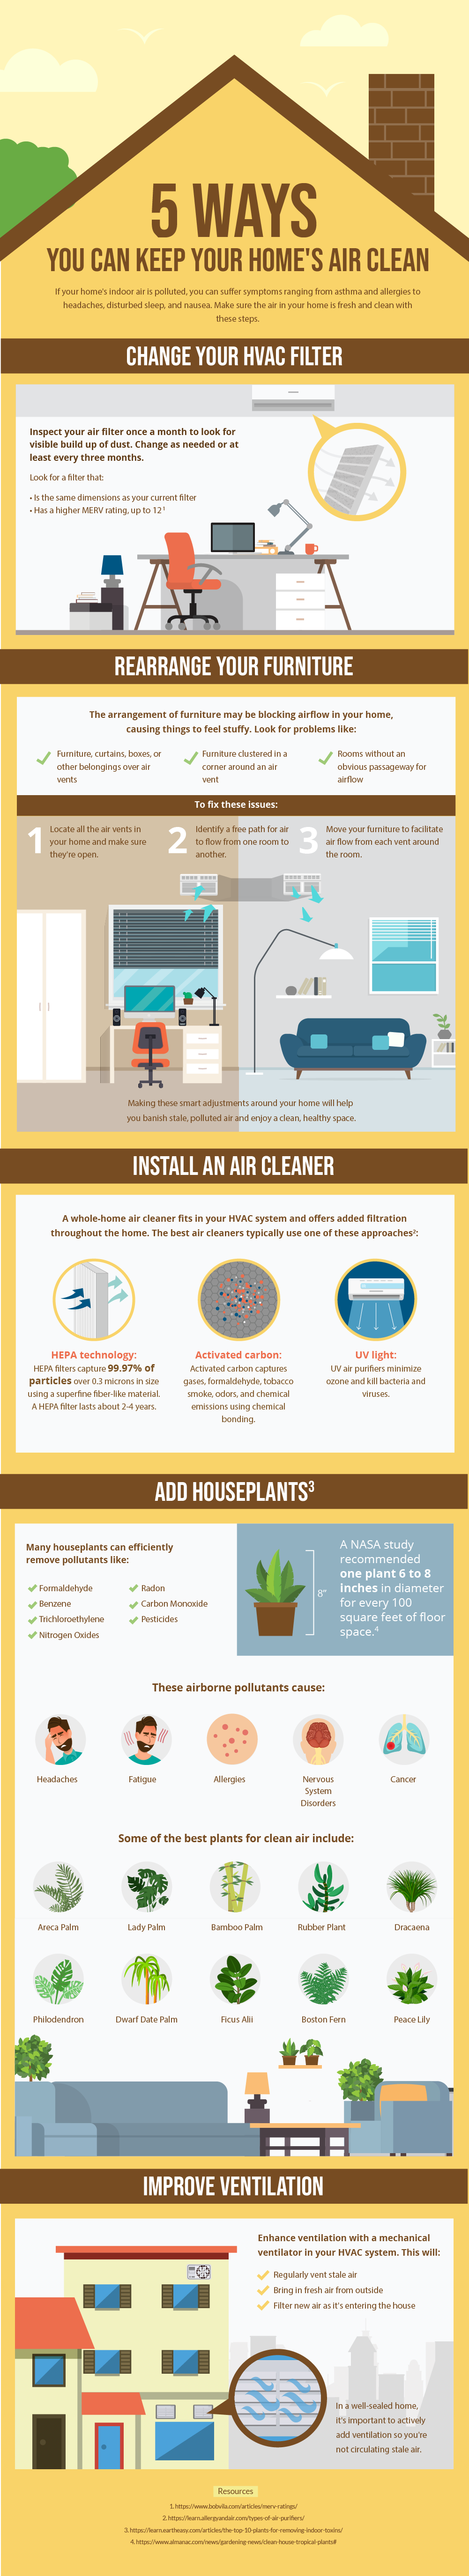 Ways You Can Keep Your Home Air Clean